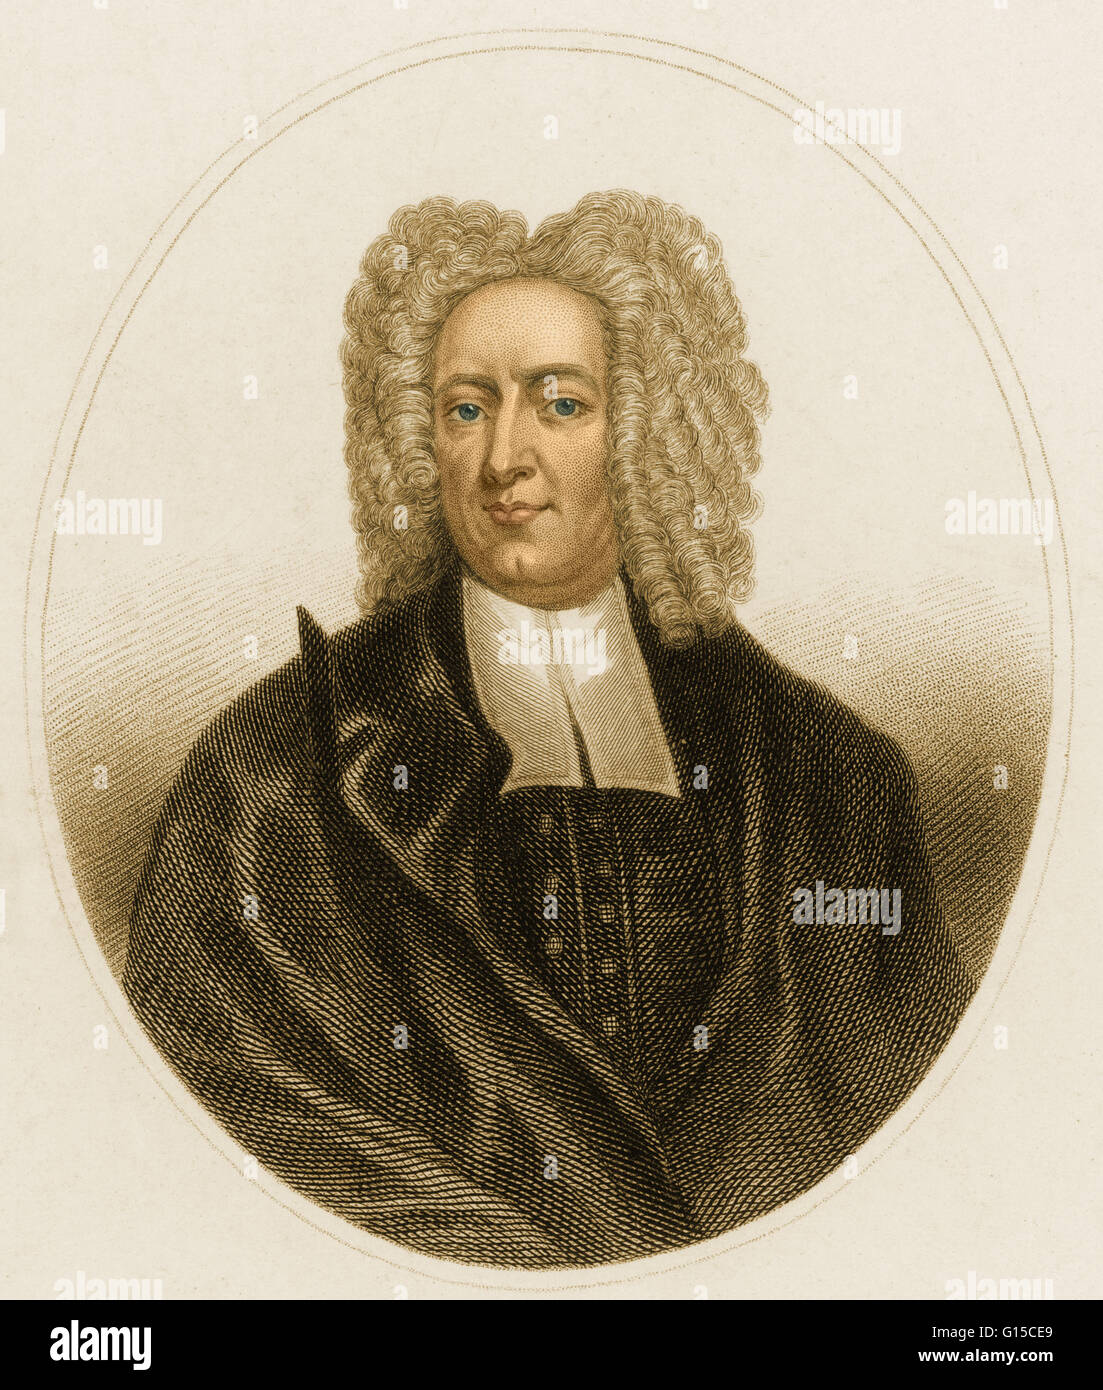 Cotton Mather (February 12, 1663 - February 13, 1728) was a socially and politically influential New England Puritan - Stock Image